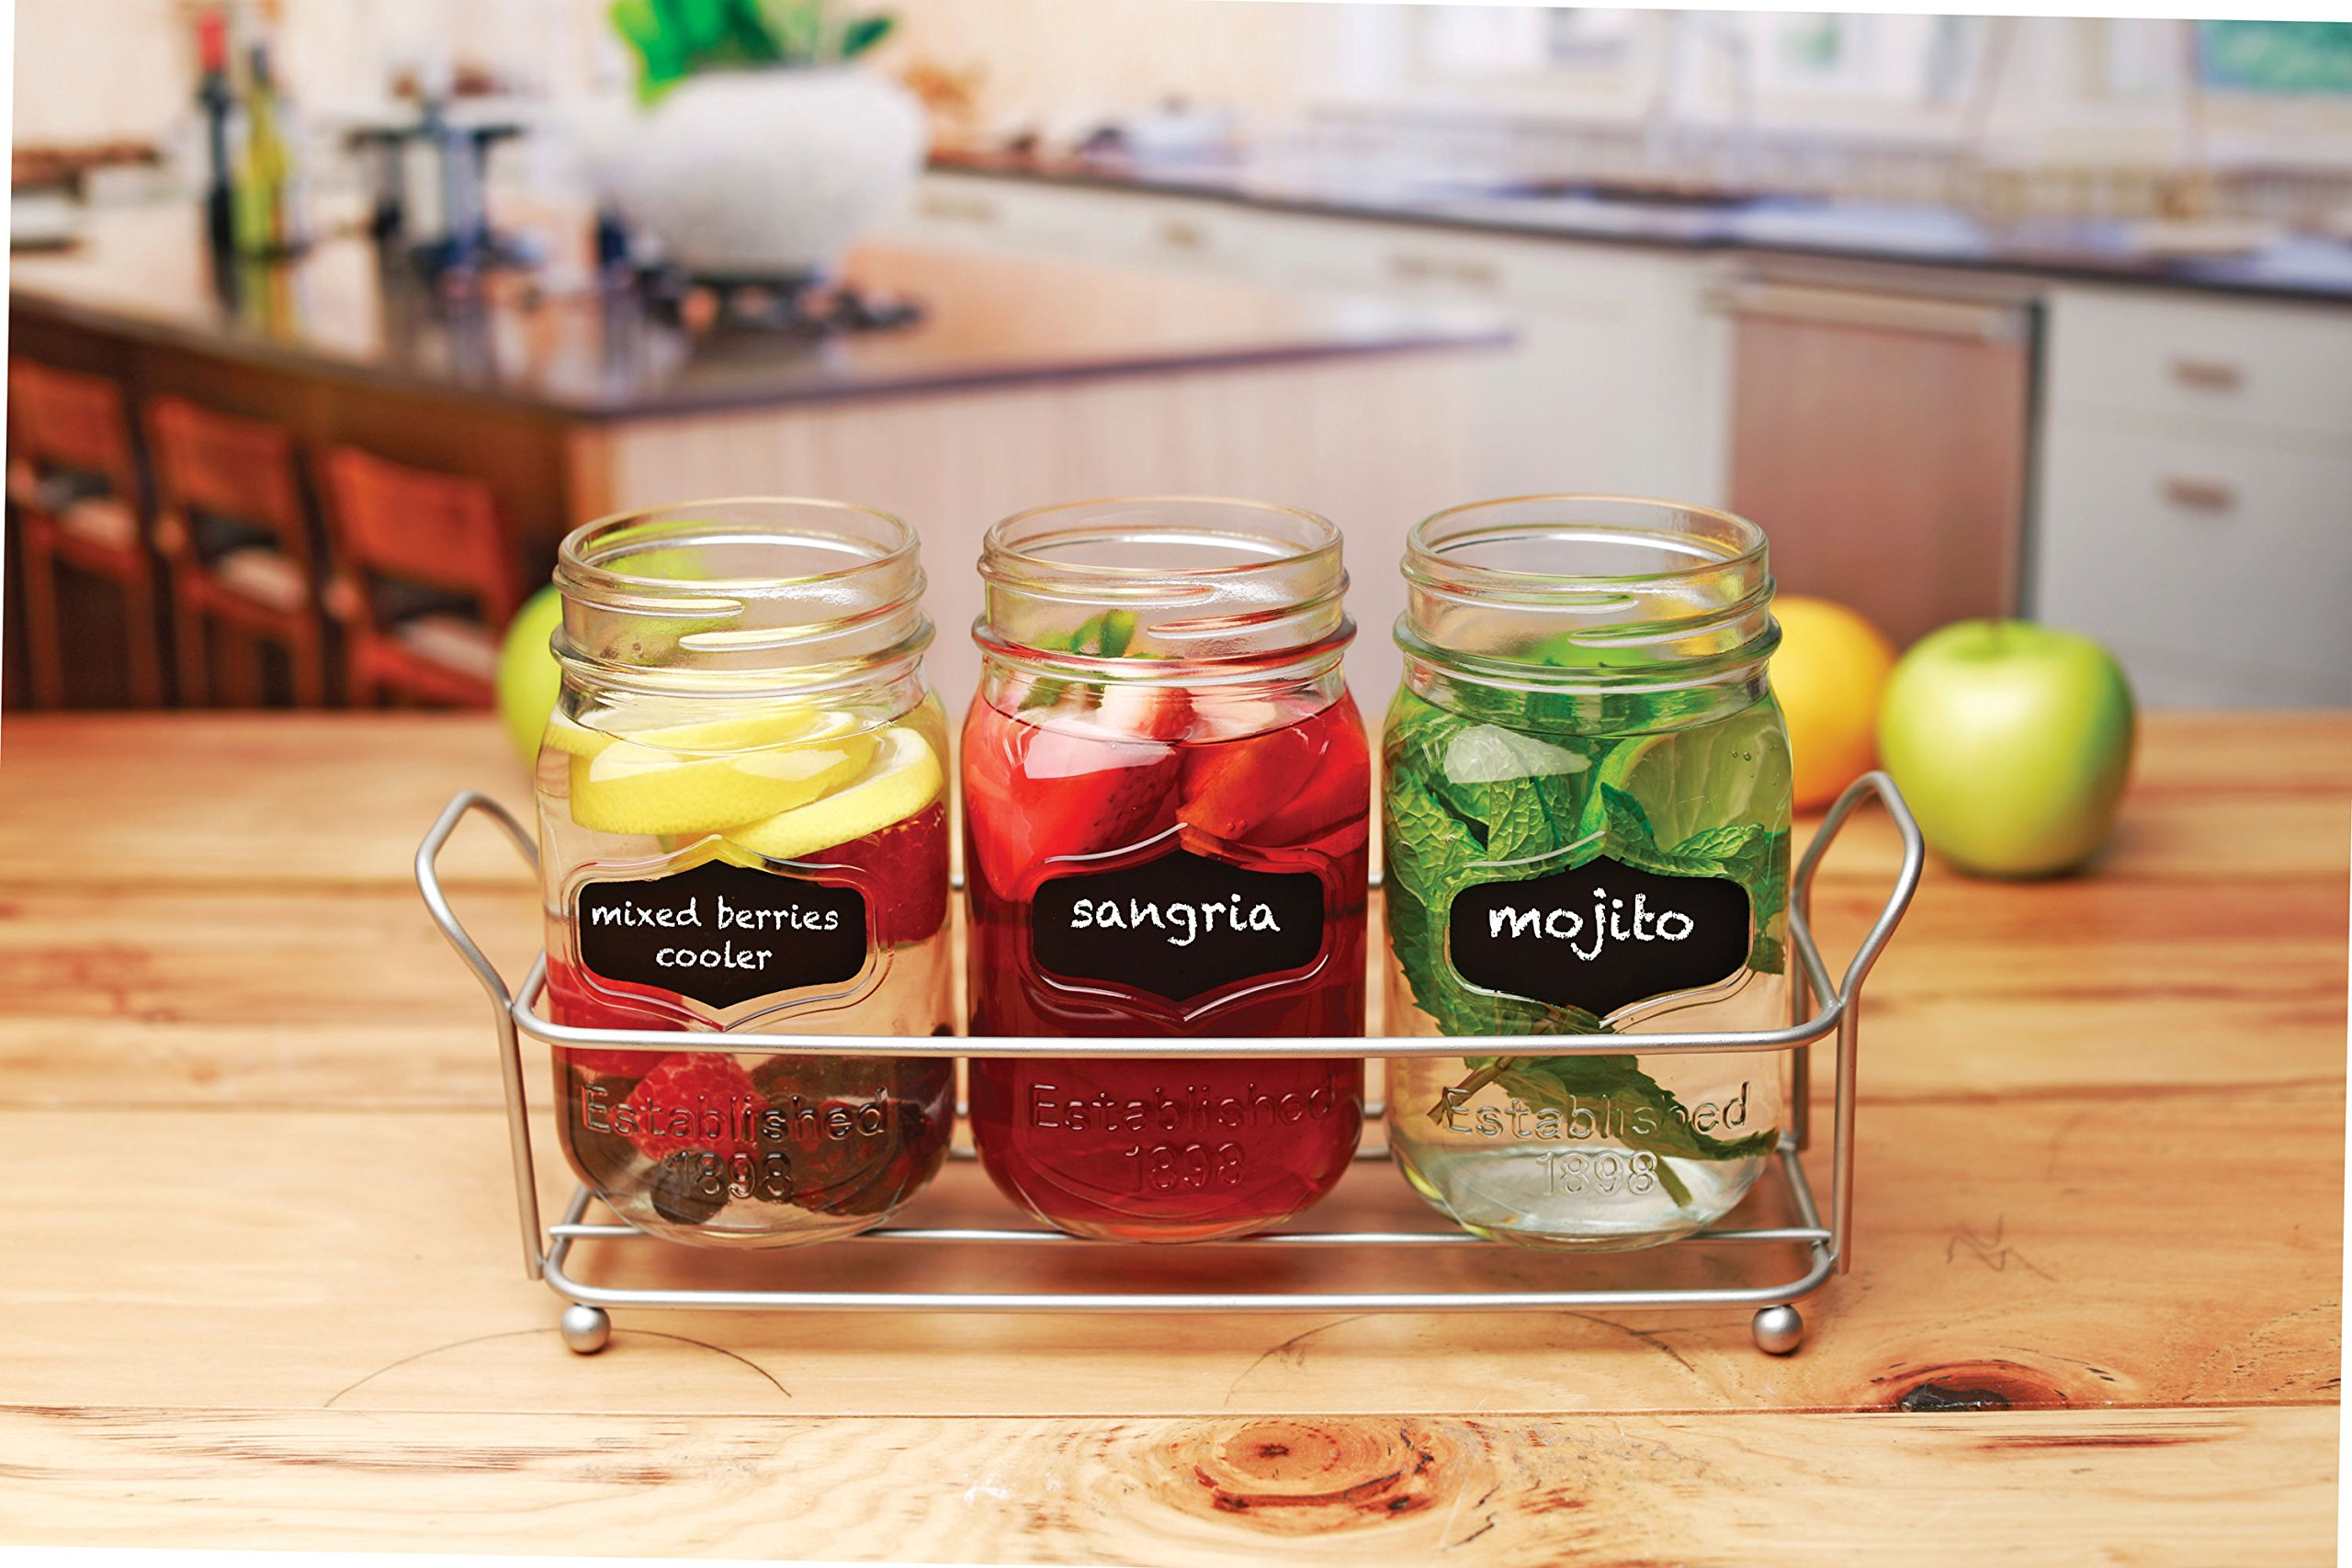 3-pc Mason Jar Flatware Caddies - 17 Oz. Vintage Clear Glass Utensil Organizer with Black Chalk Label on Metal Caddy with Handles - Lightweight Space-Saver Home and Party Drinkware Set by Emenest (Image #3)